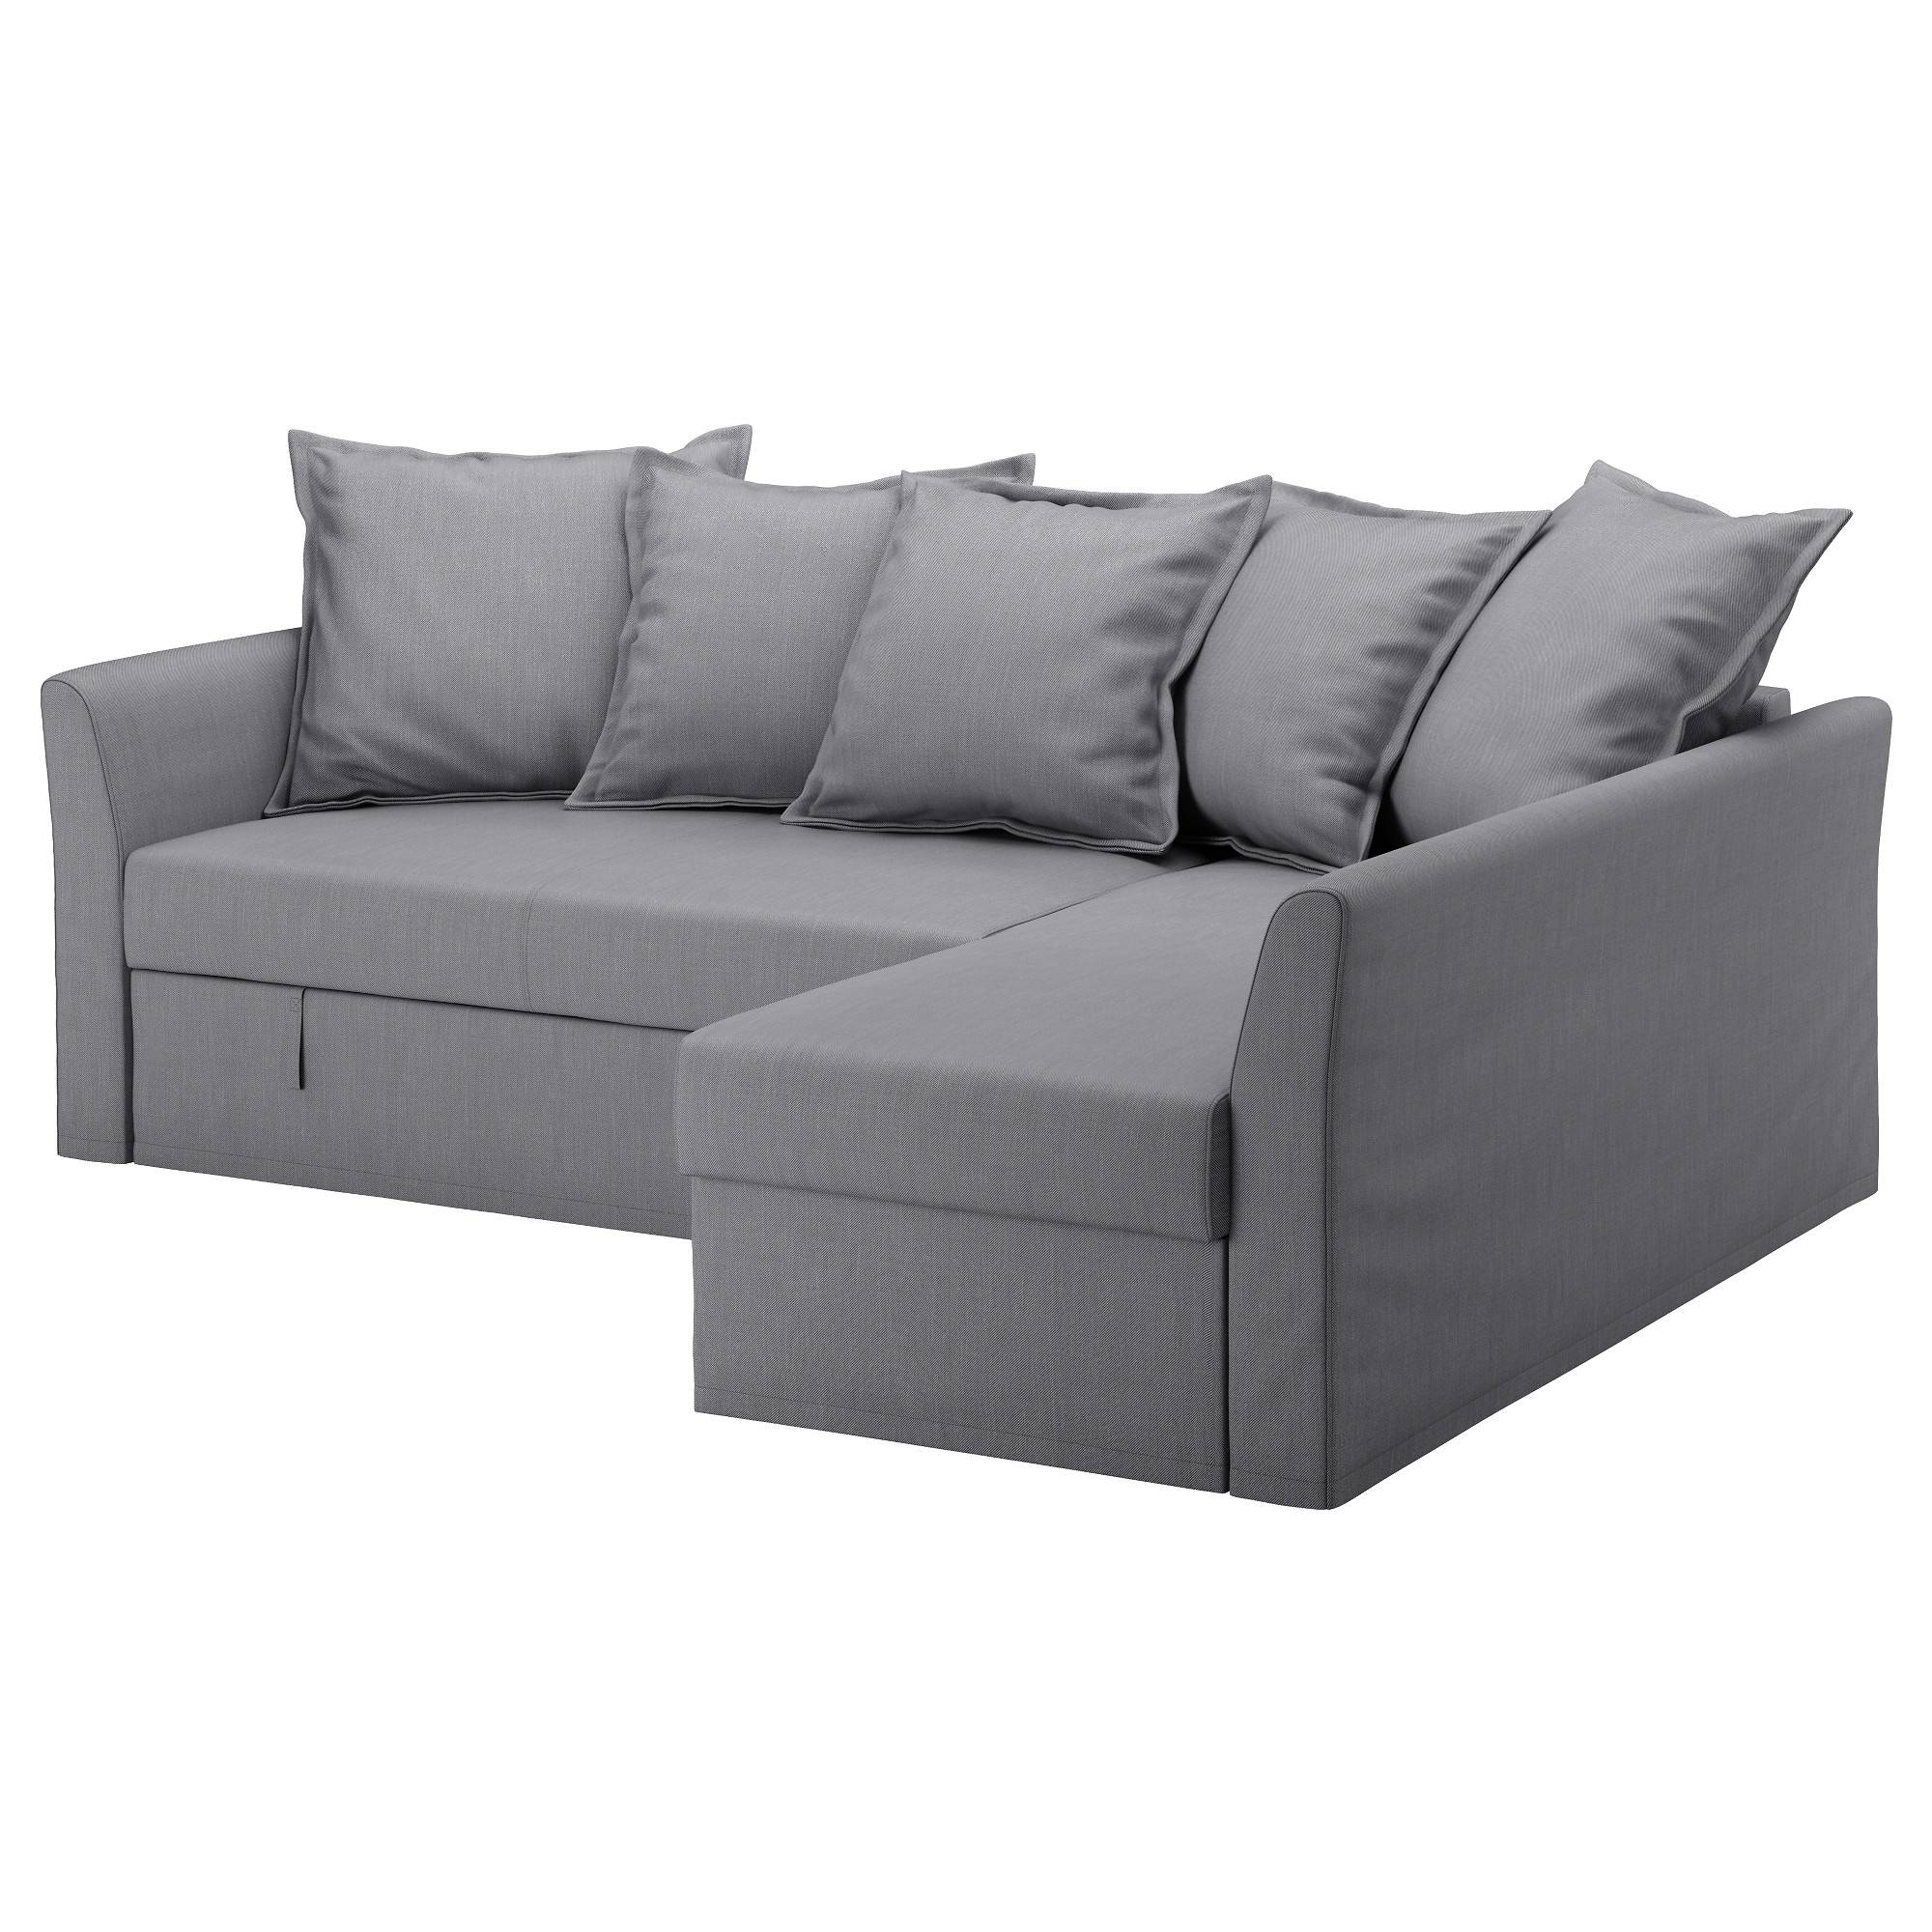 Holmsund Cover For Sleeper Sectional, 3 Seat - Nordvalla Medium for Storage Sofa Ikea (Image 13 of 25)